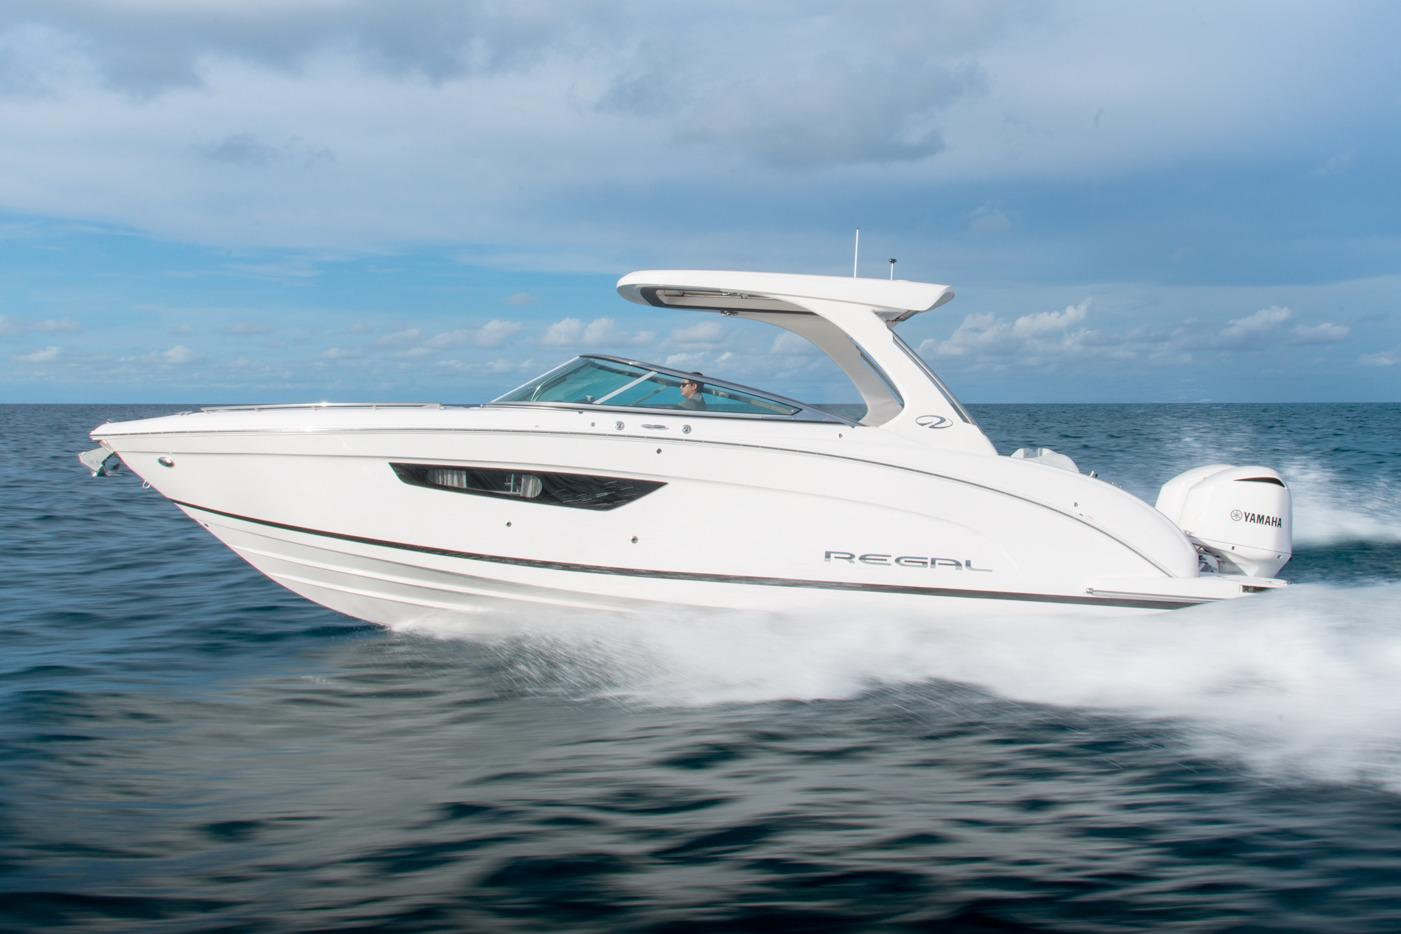 2018 Regal 33 Obx Power Boat For Sale Www Yachtworld Com